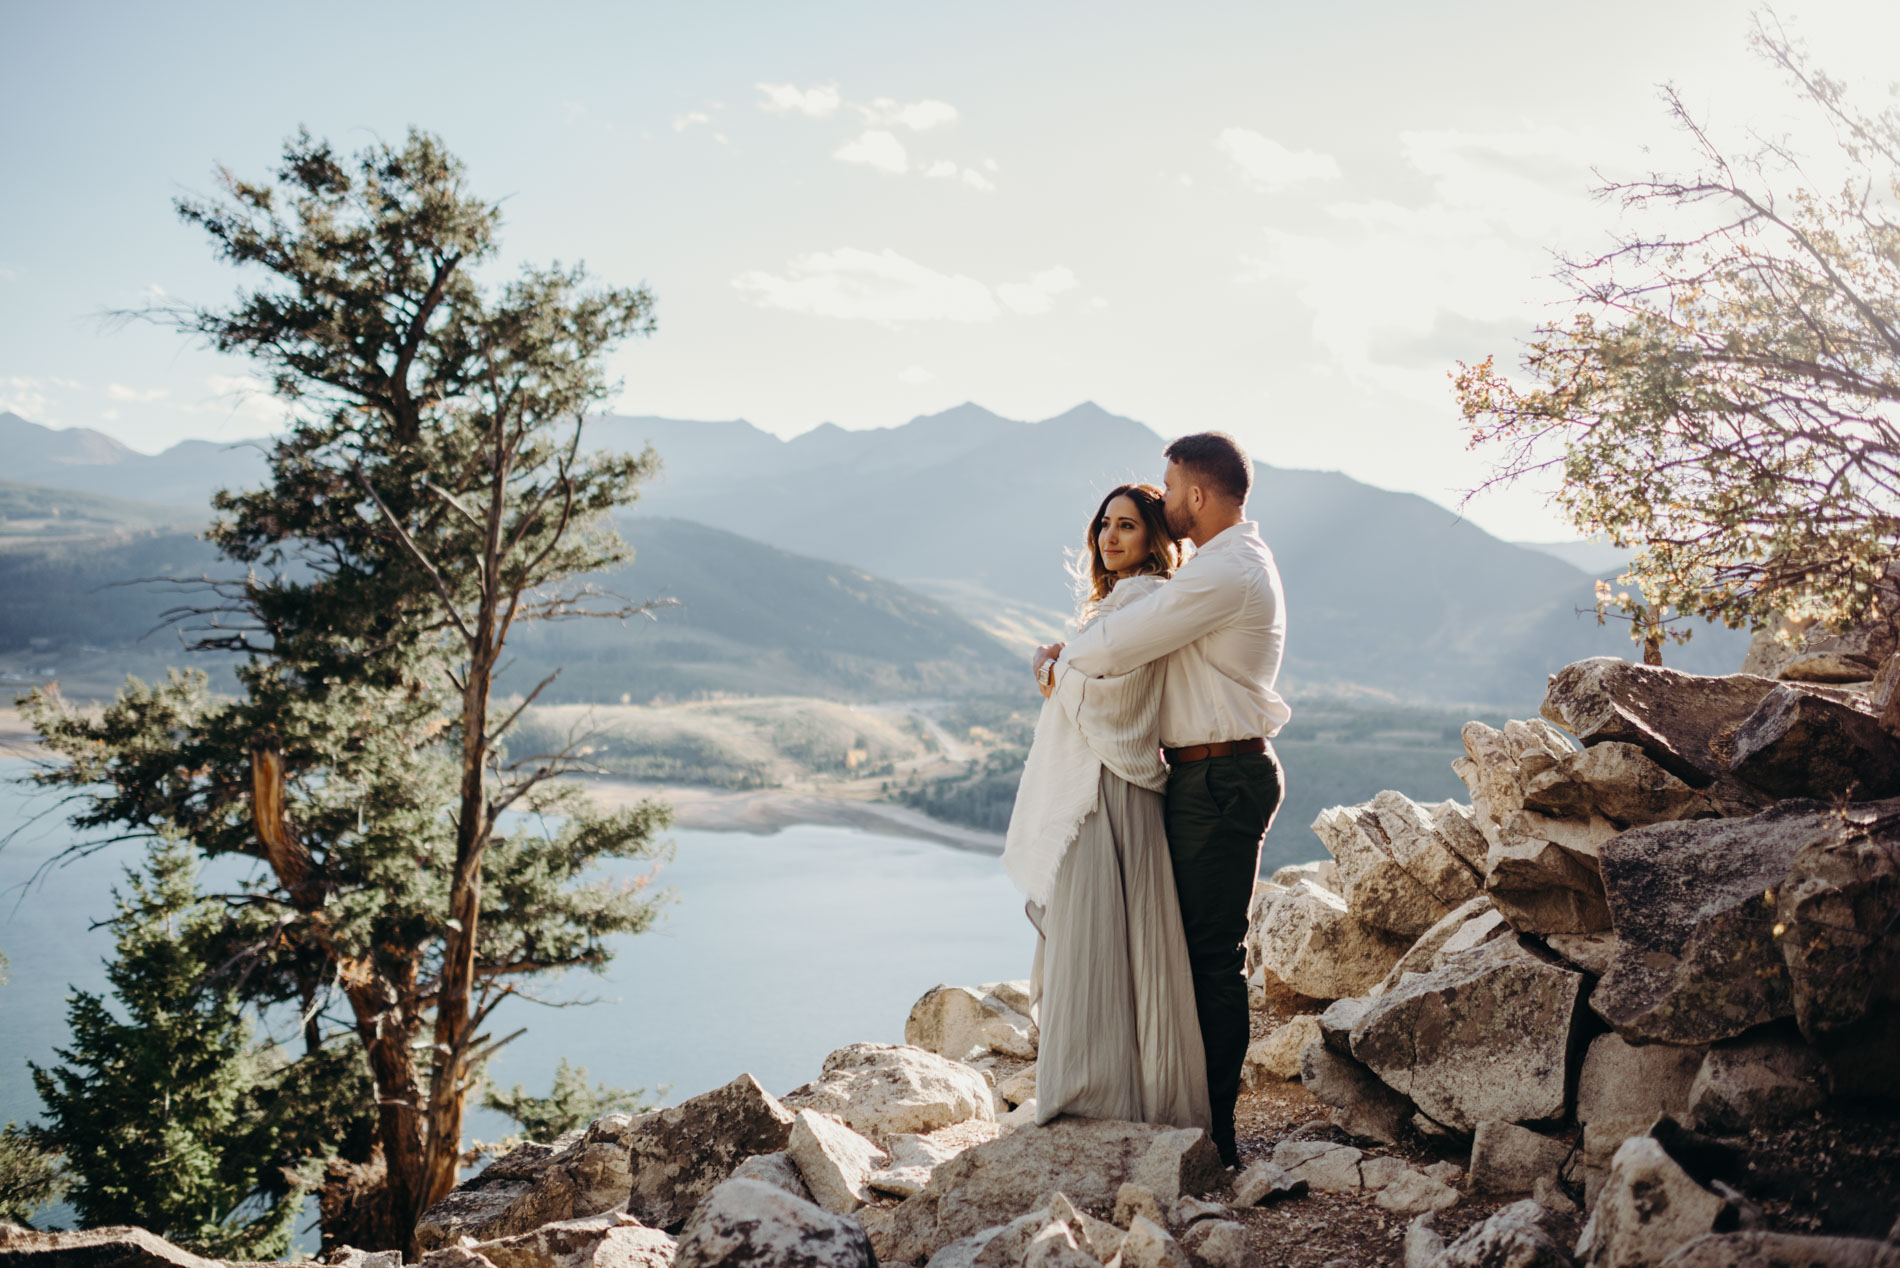 sapphire-point-overlook-sapphire-point-Engagement-session-colorado-engagement-session-Adventurous-Wedding-Photography-Adventurous-Wedding-Photograph-Adventure-Elopement-Photographer-Adventurous-Elopement-Photograph-Adventurous-Elopement-Photographer-Adventurous-Destination